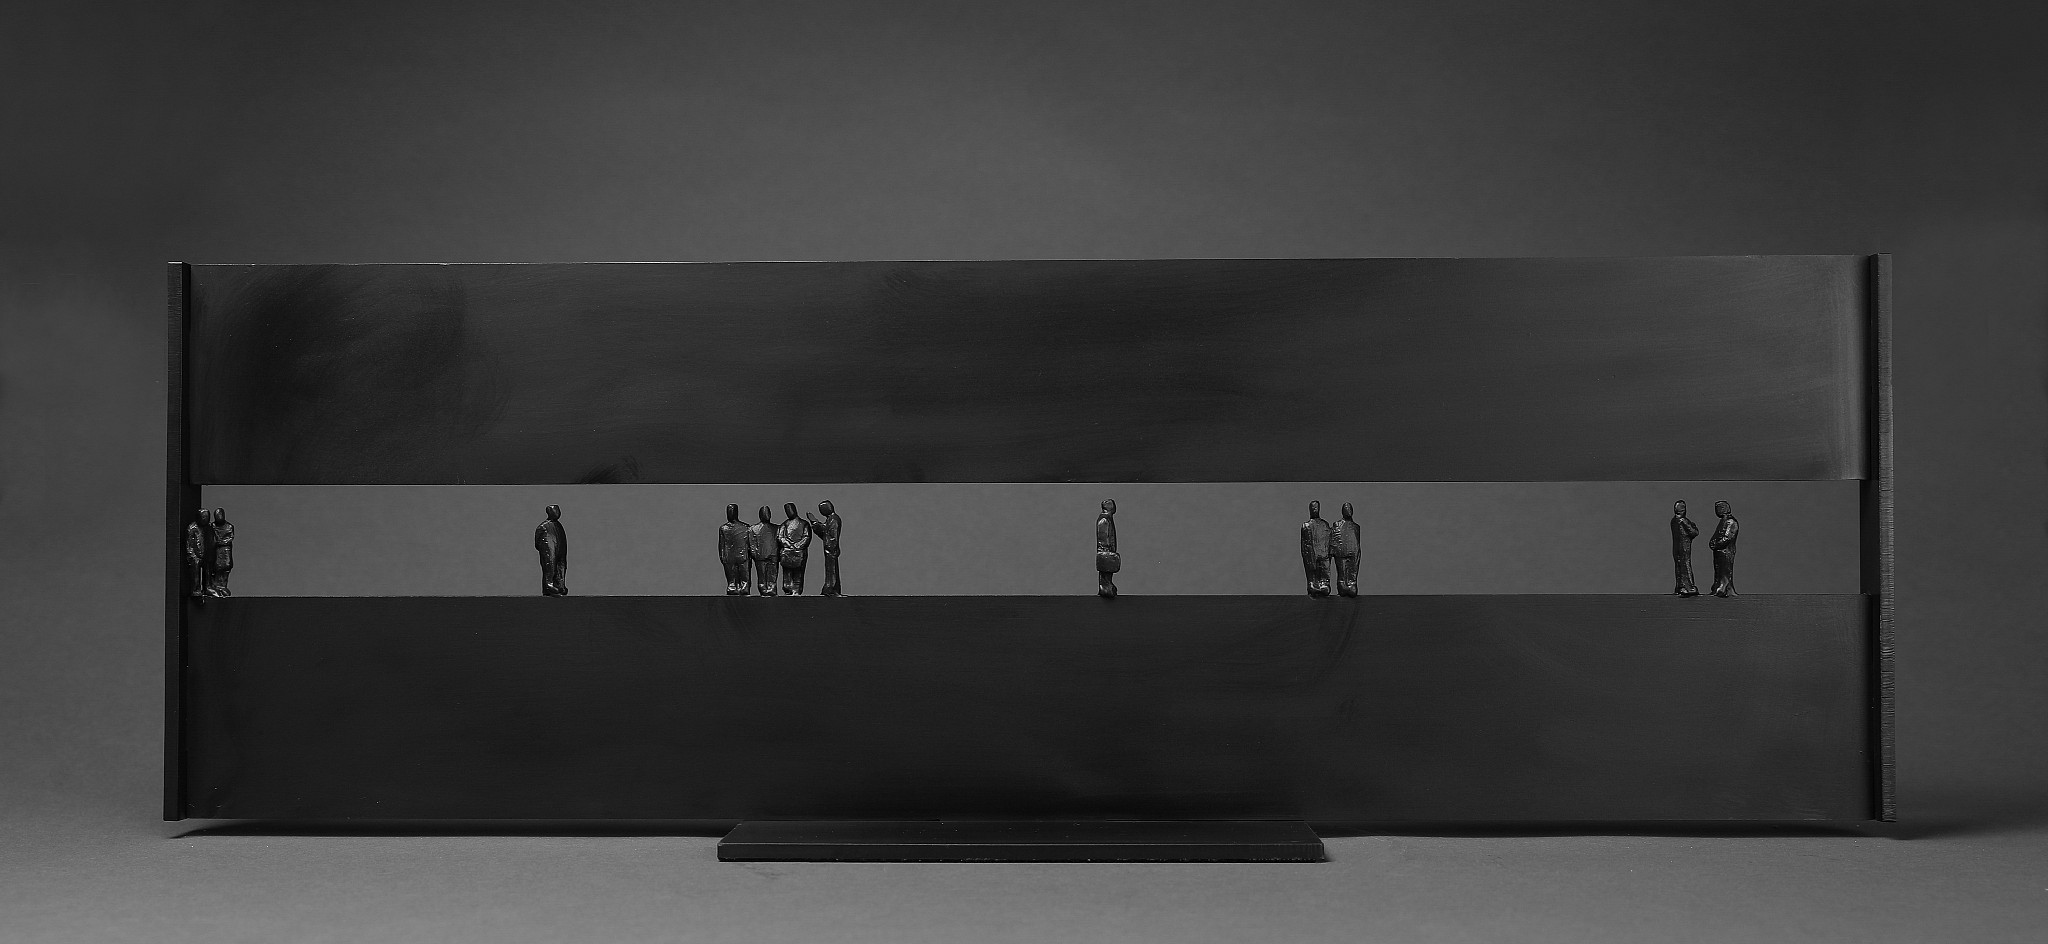 In Transit II, ed. 1/9,  2018 Bronze and steel 10 x 30 x 6 inches